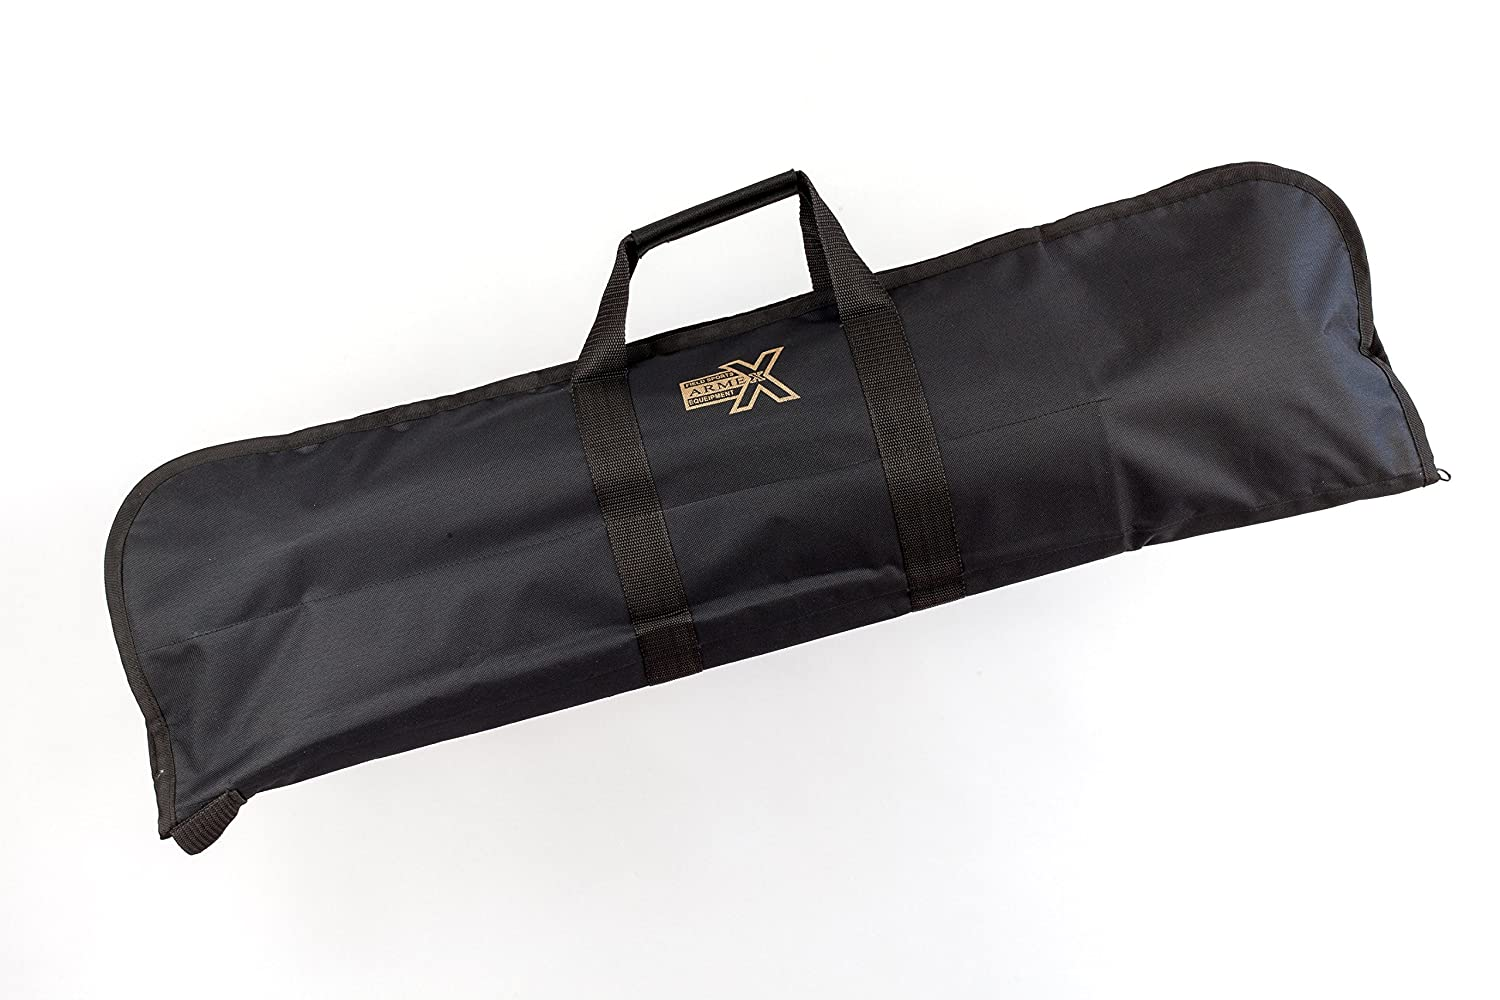 ARMEX RECURVE TAKEDOWN BOW BAG